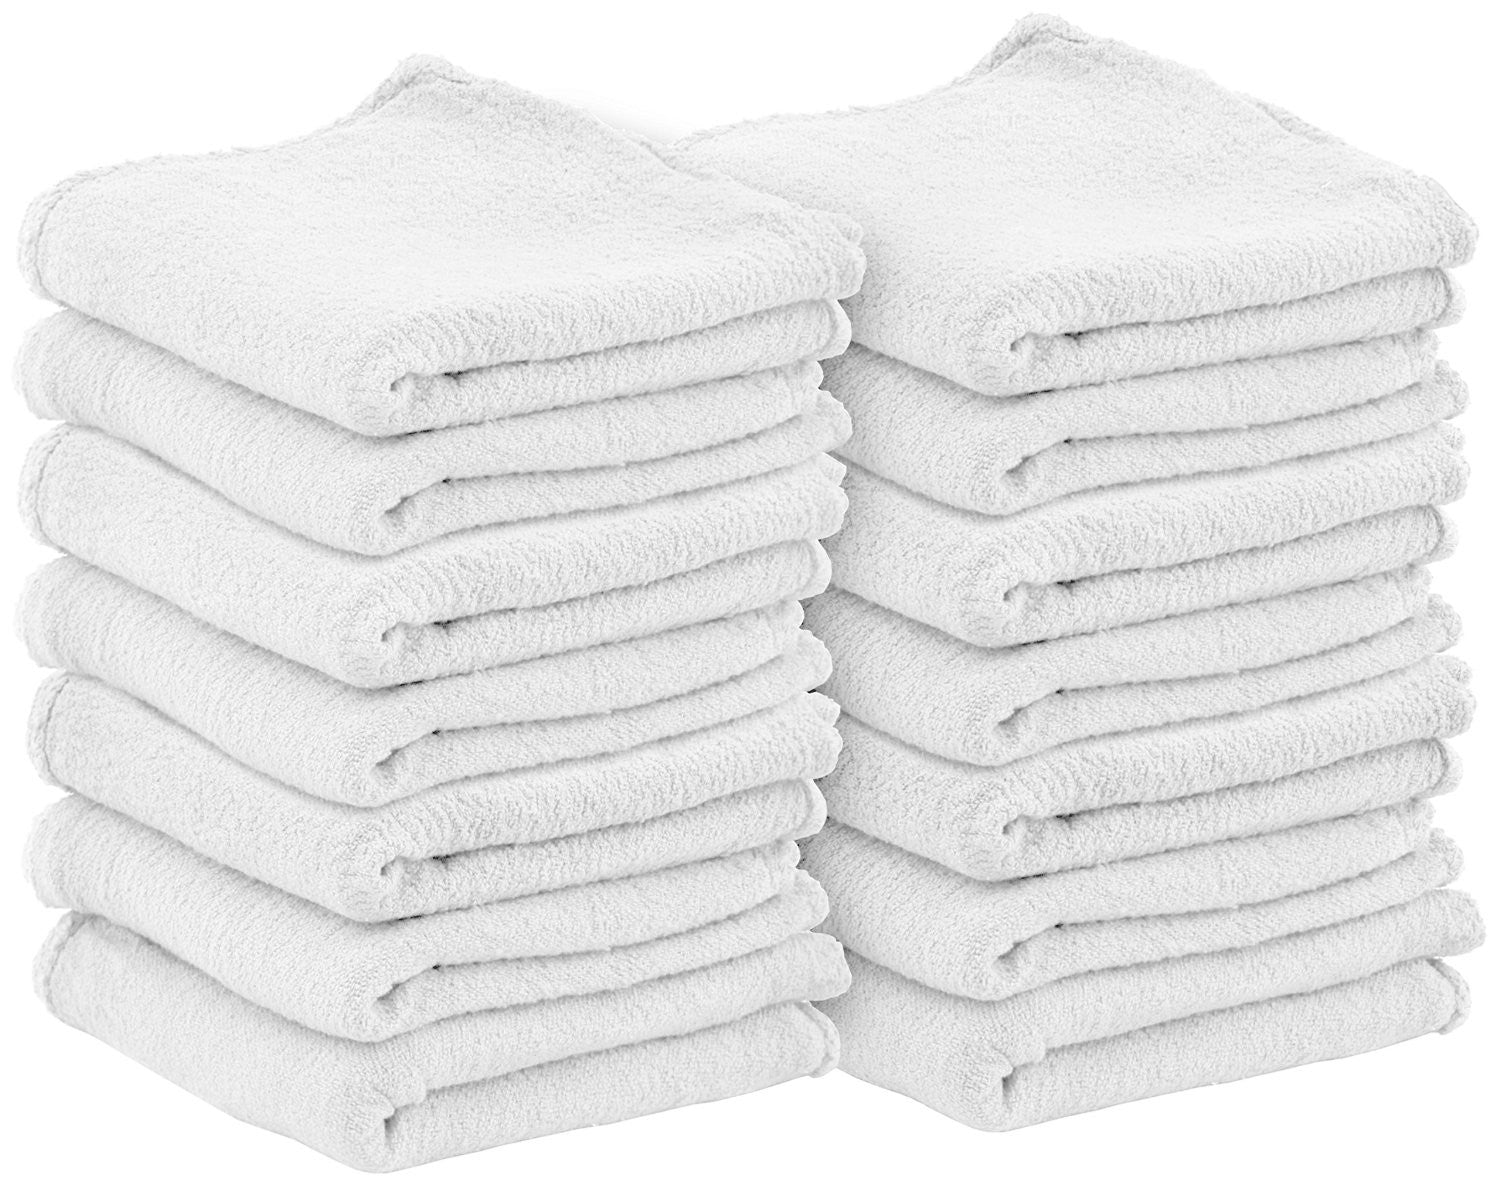 Auto Mechanic Shop Towels (White-100Pack)